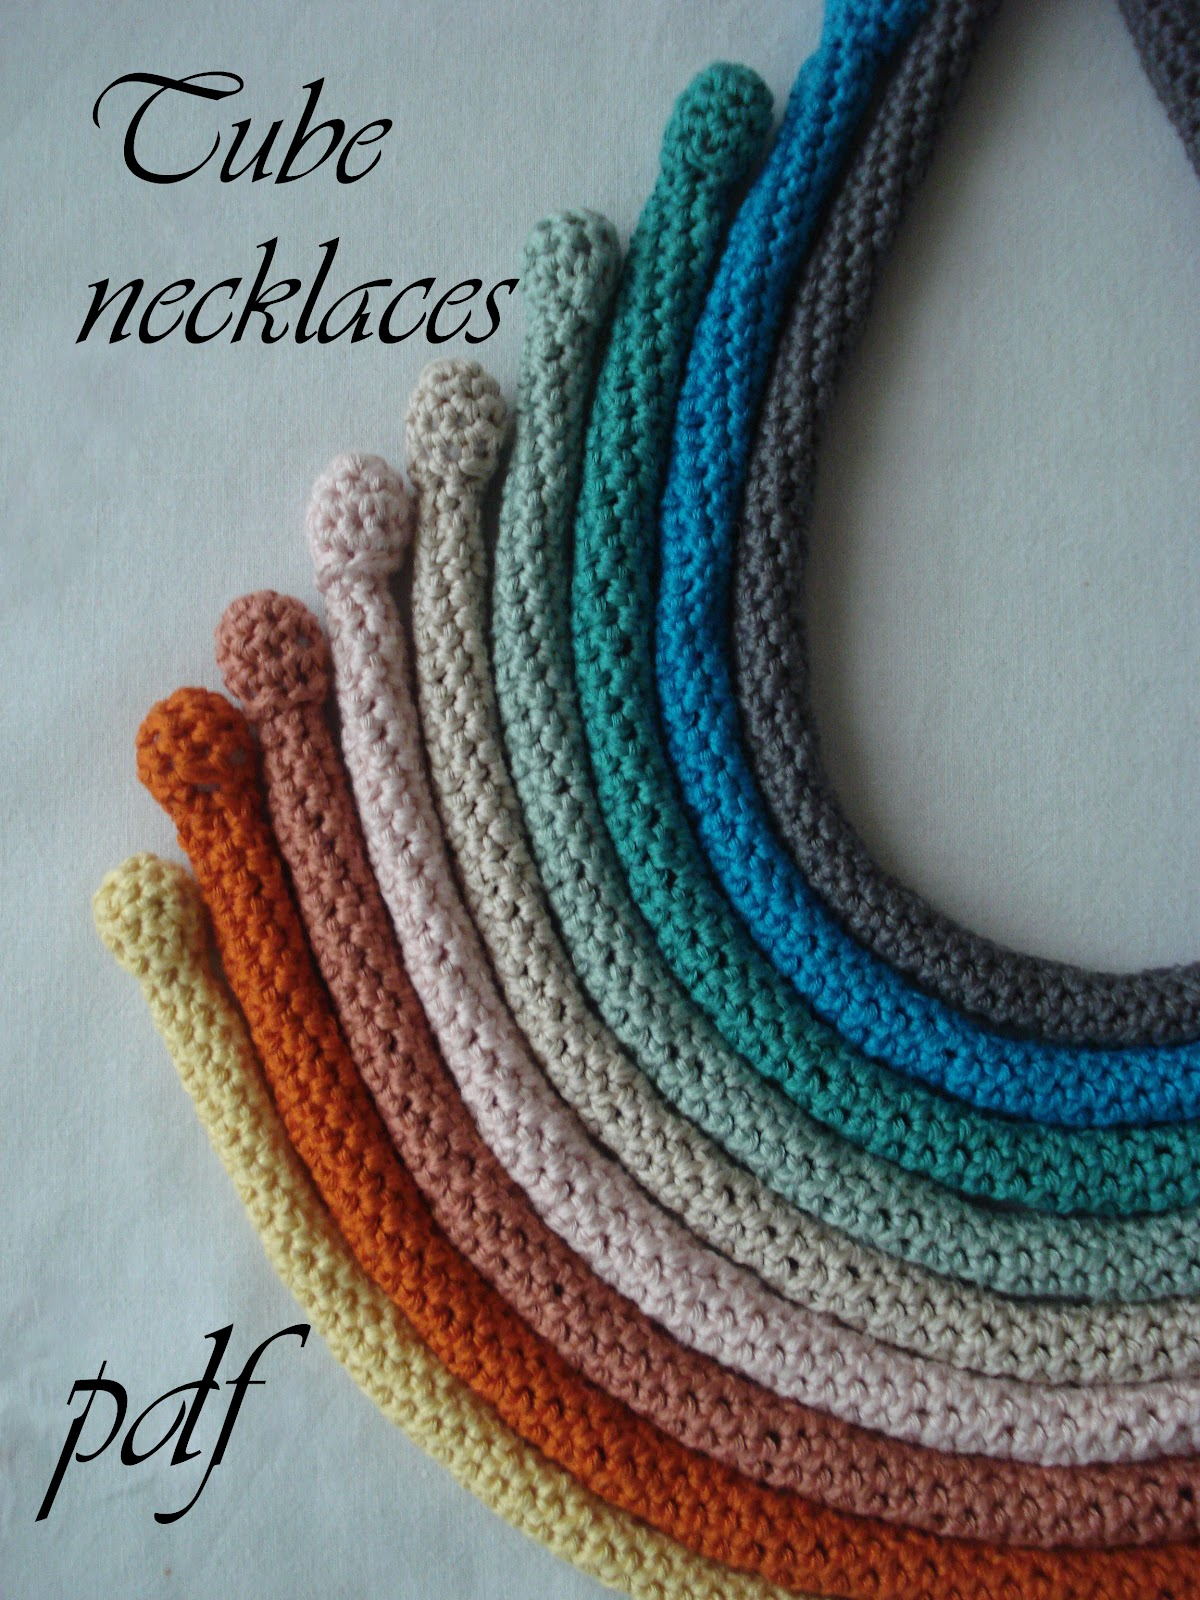 Little Treasures: PDF Crochet Pattern for sale - Tube Necklaces